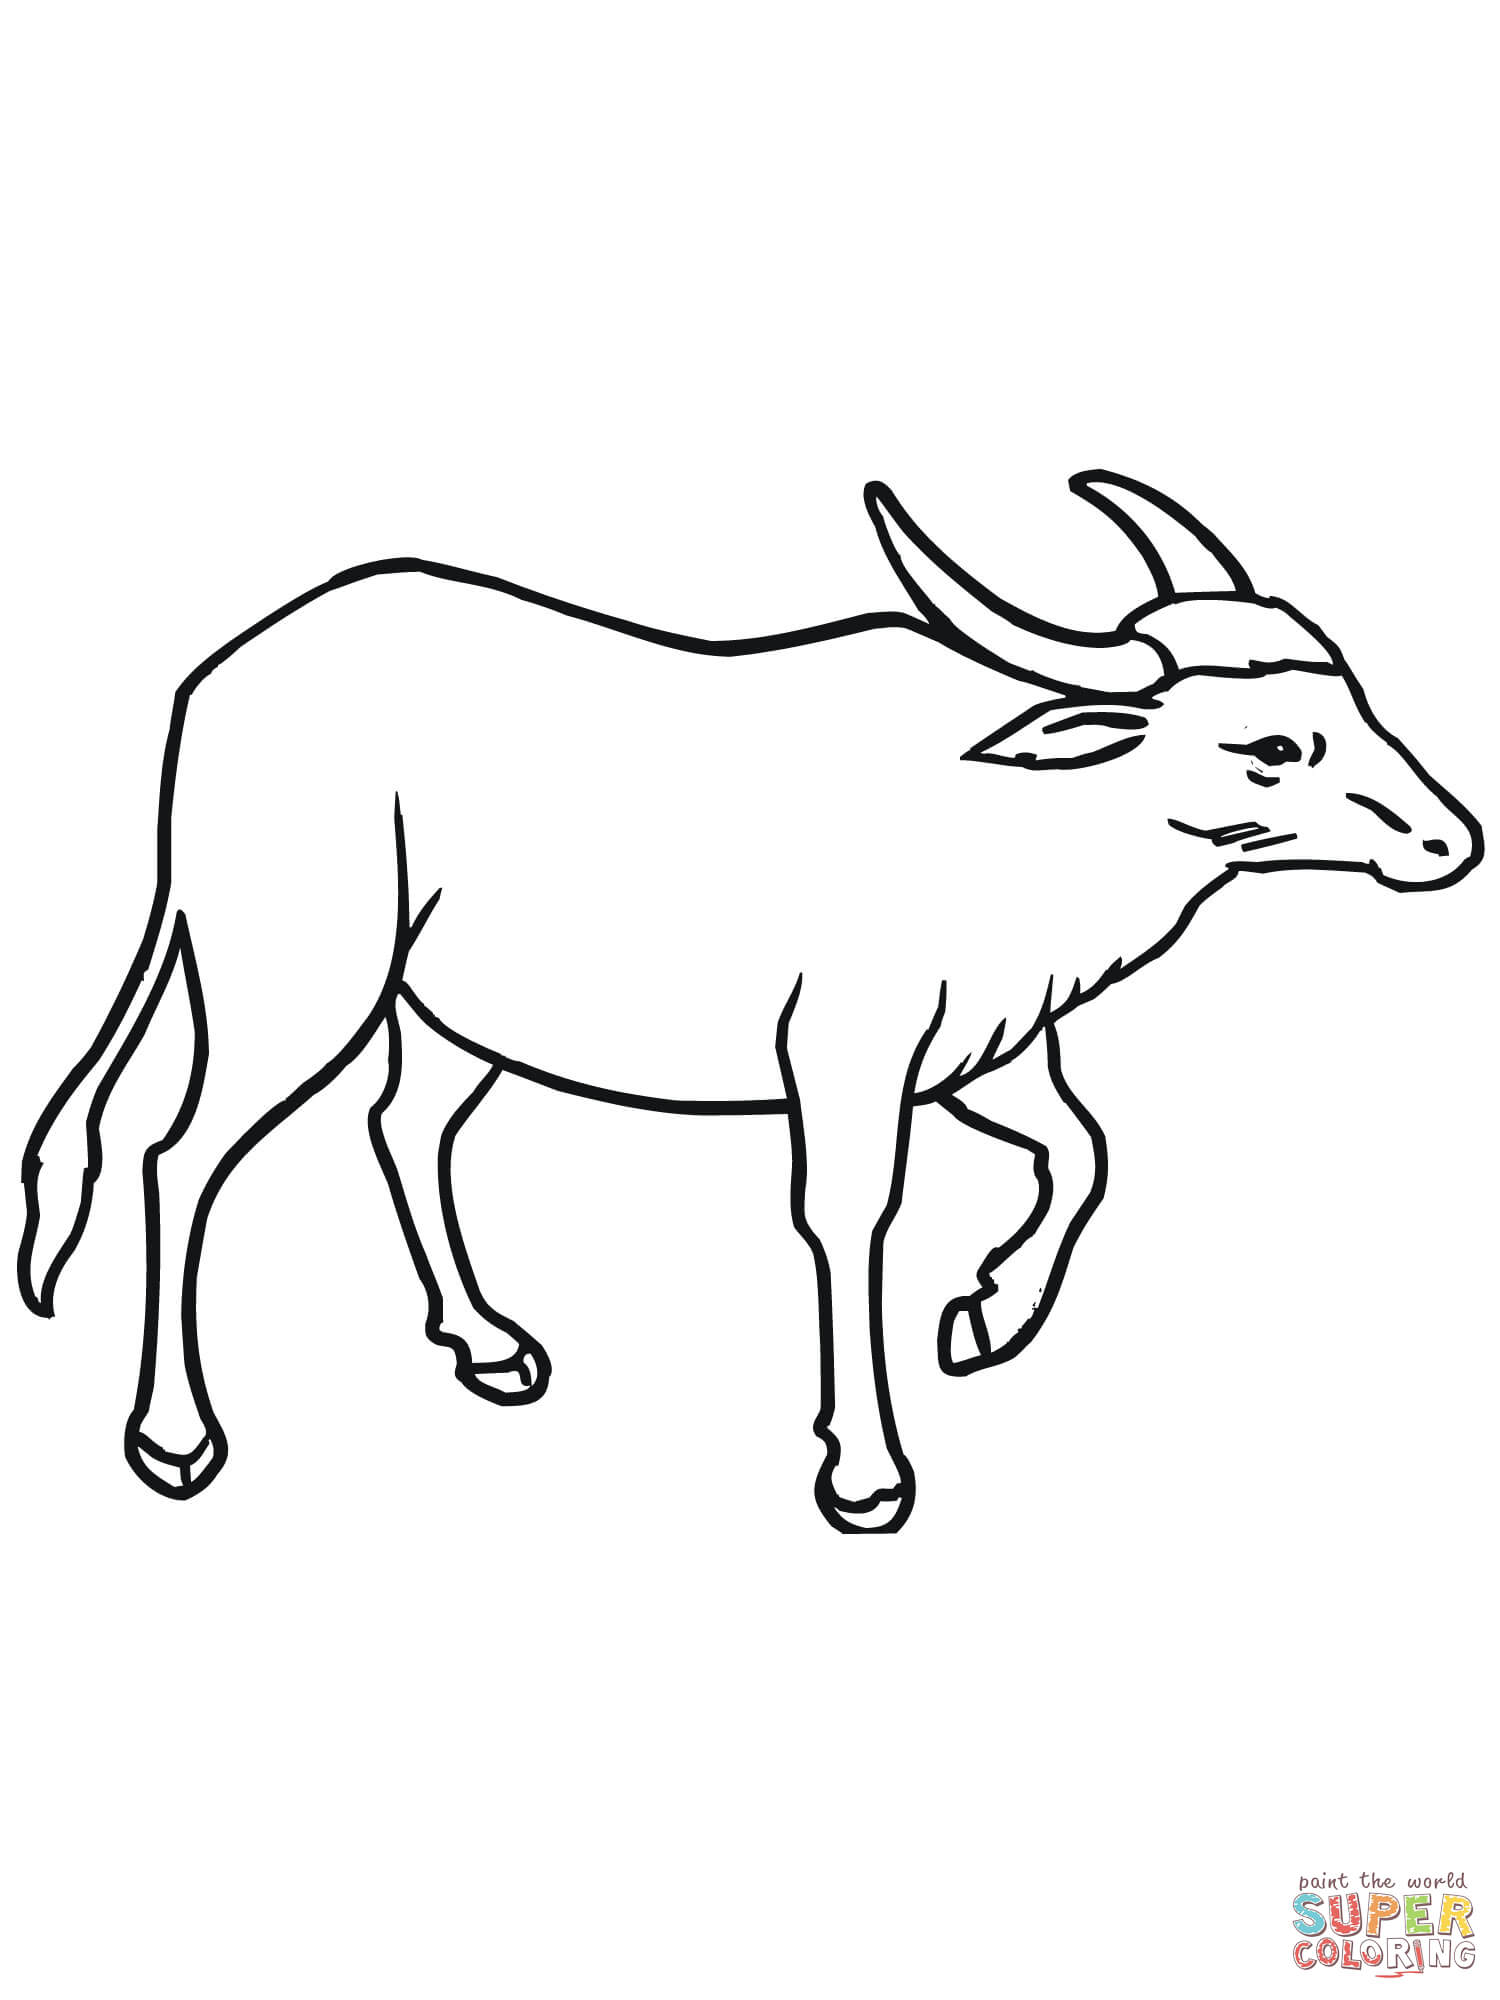 buffalo coloring pages - photo#18